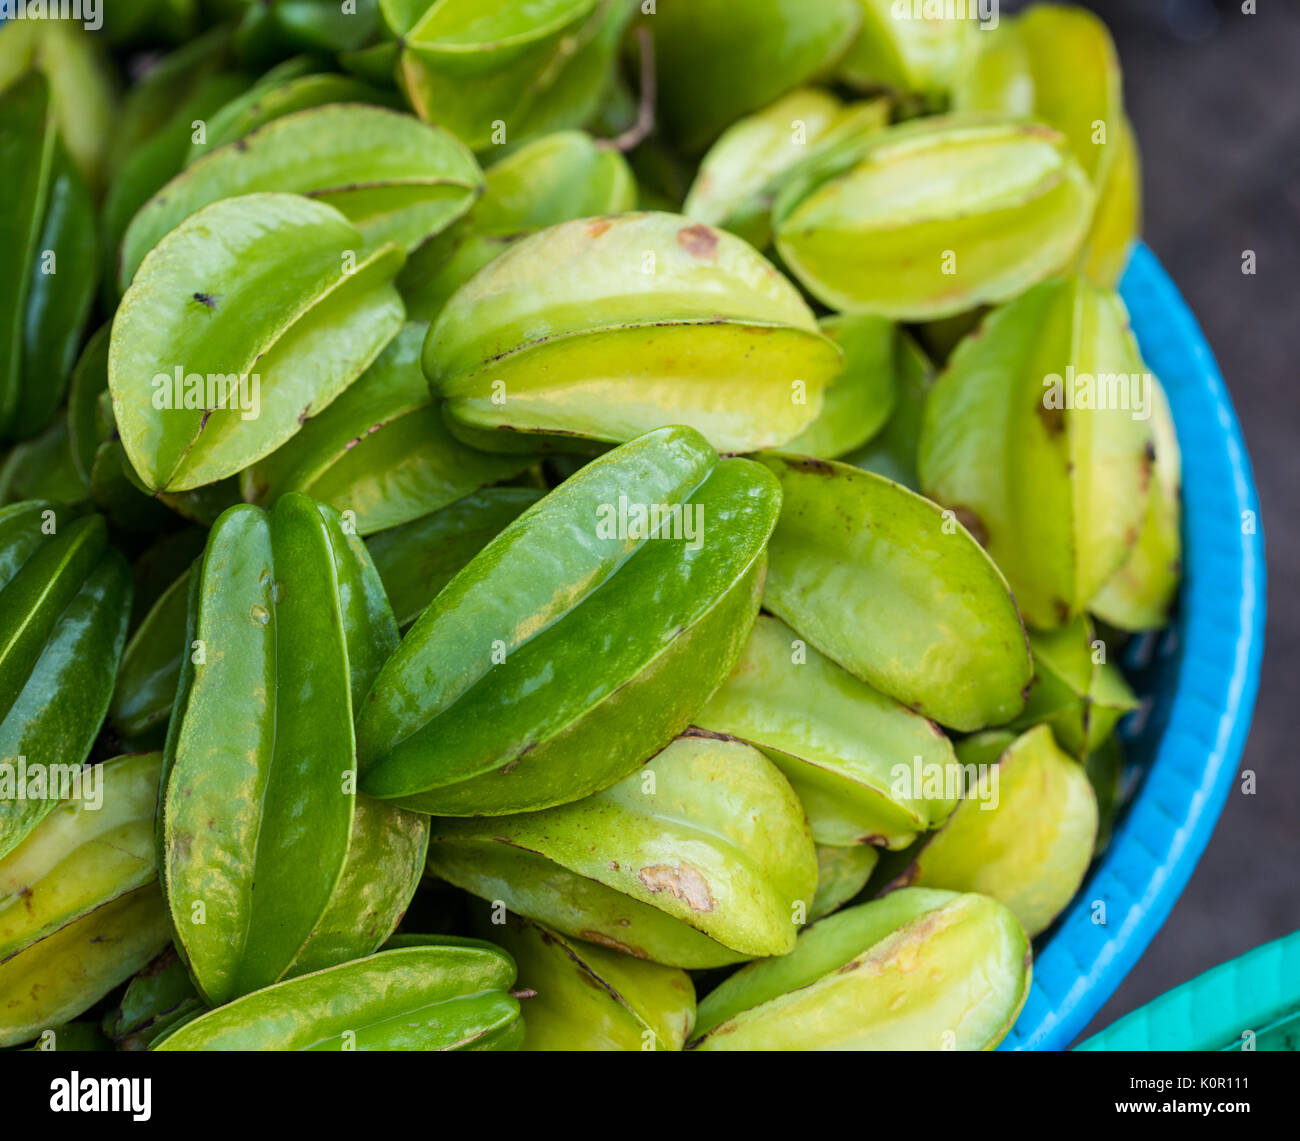 Close-up of star fruits or Carambola fruits was managed for sale in the Asian market. - Stock Image